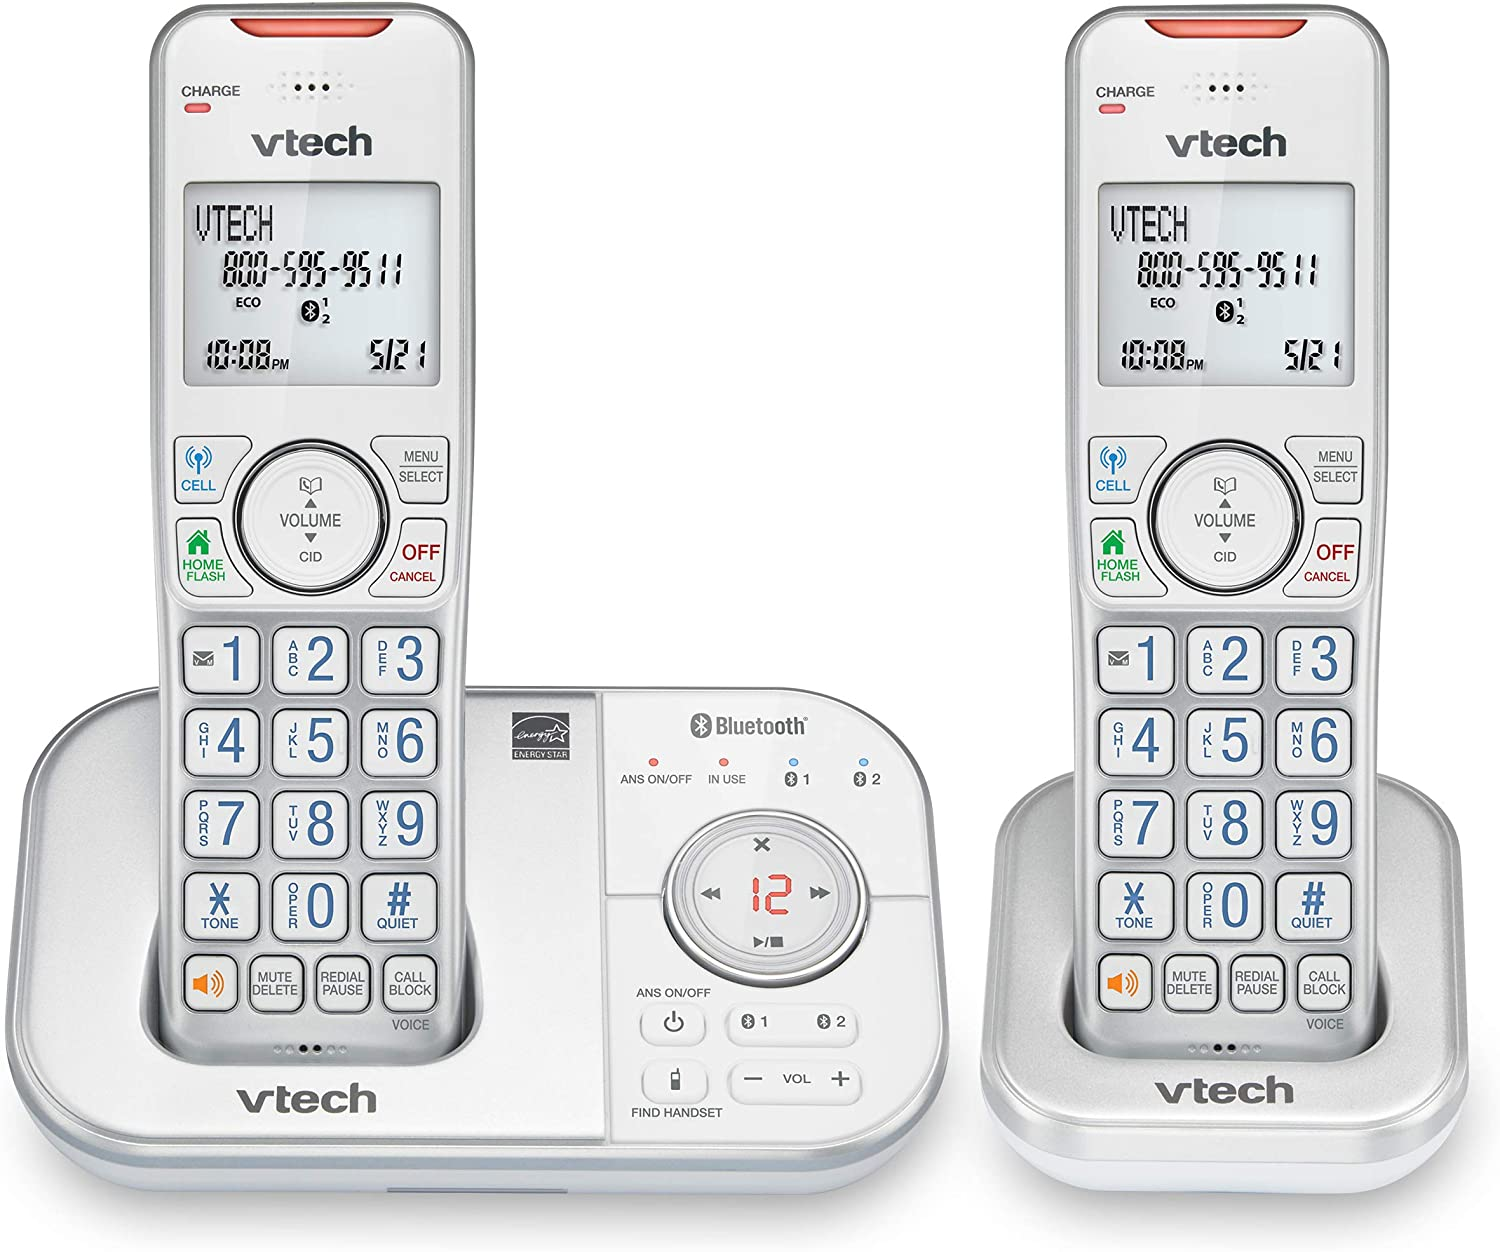 VTech VS112-27 DECT 6.0 Bluetooth 2 Handset Cordless Phone for Home with Answering Machine, Call Blocking, Caller ID, Intercom and Connect to Cell (Silver & White)